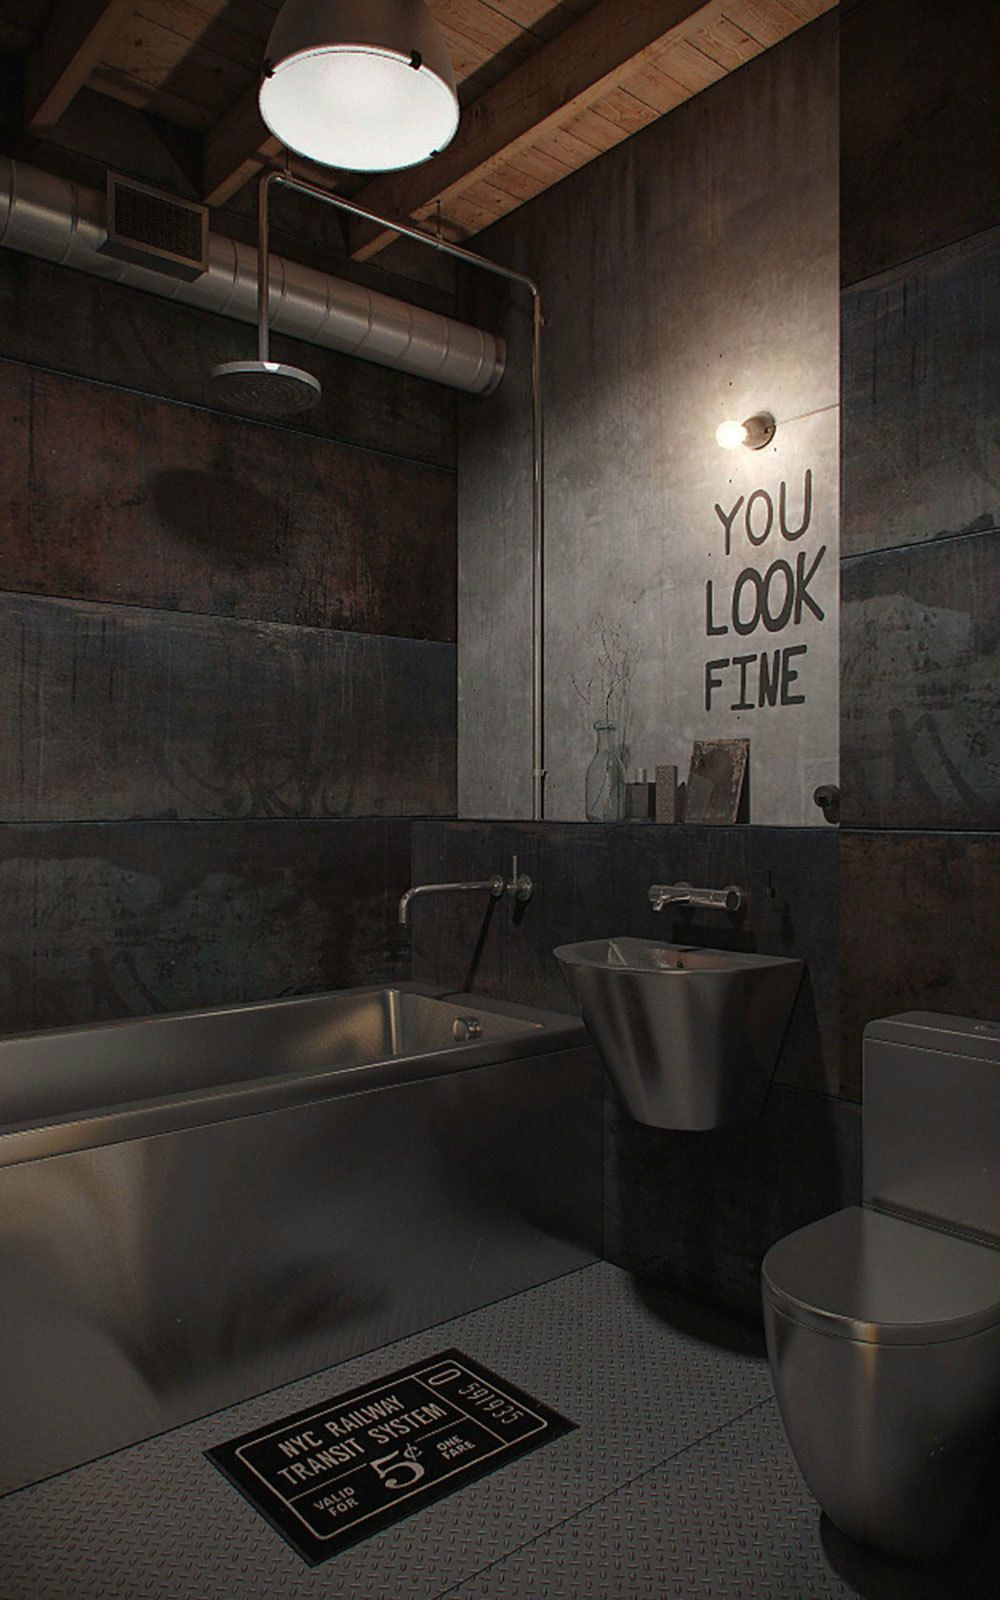 Architecture Design Ideas Interior Utilitarian Bathroom Nyc 1000x1600 In 2020 Industrial Loft Design Industrial Bathroom Design Industrial Bathroom Decor